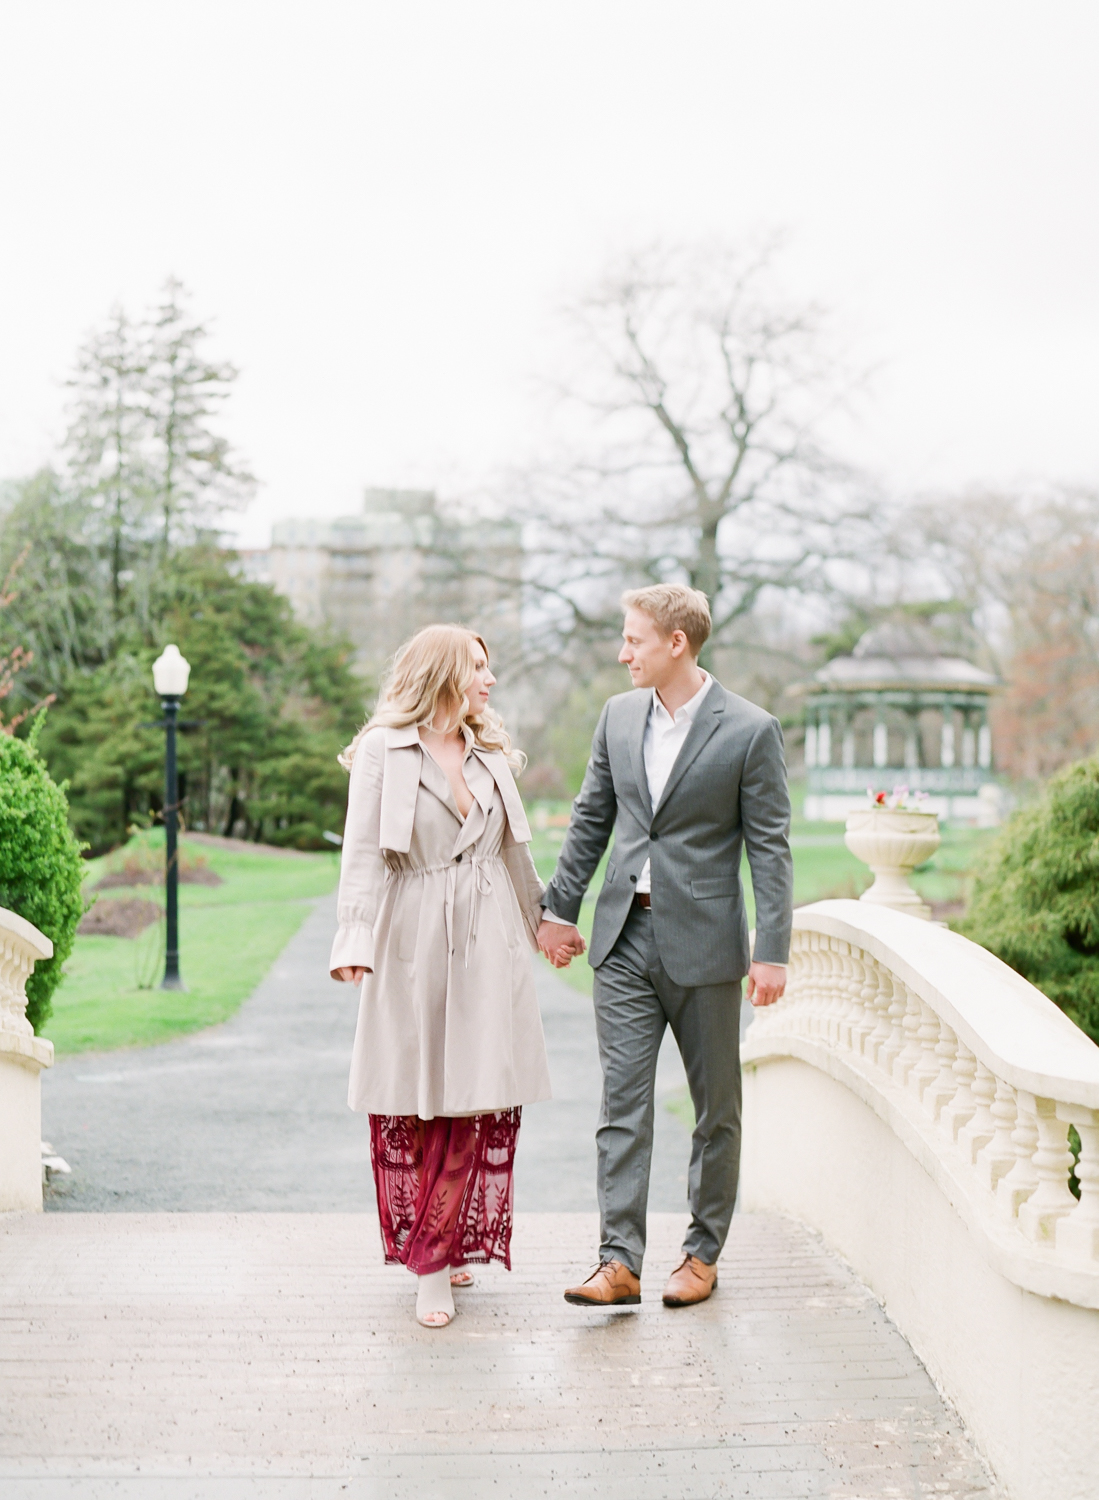 Jacqueline Anne Photography - Amanda and Brent-43.jpg